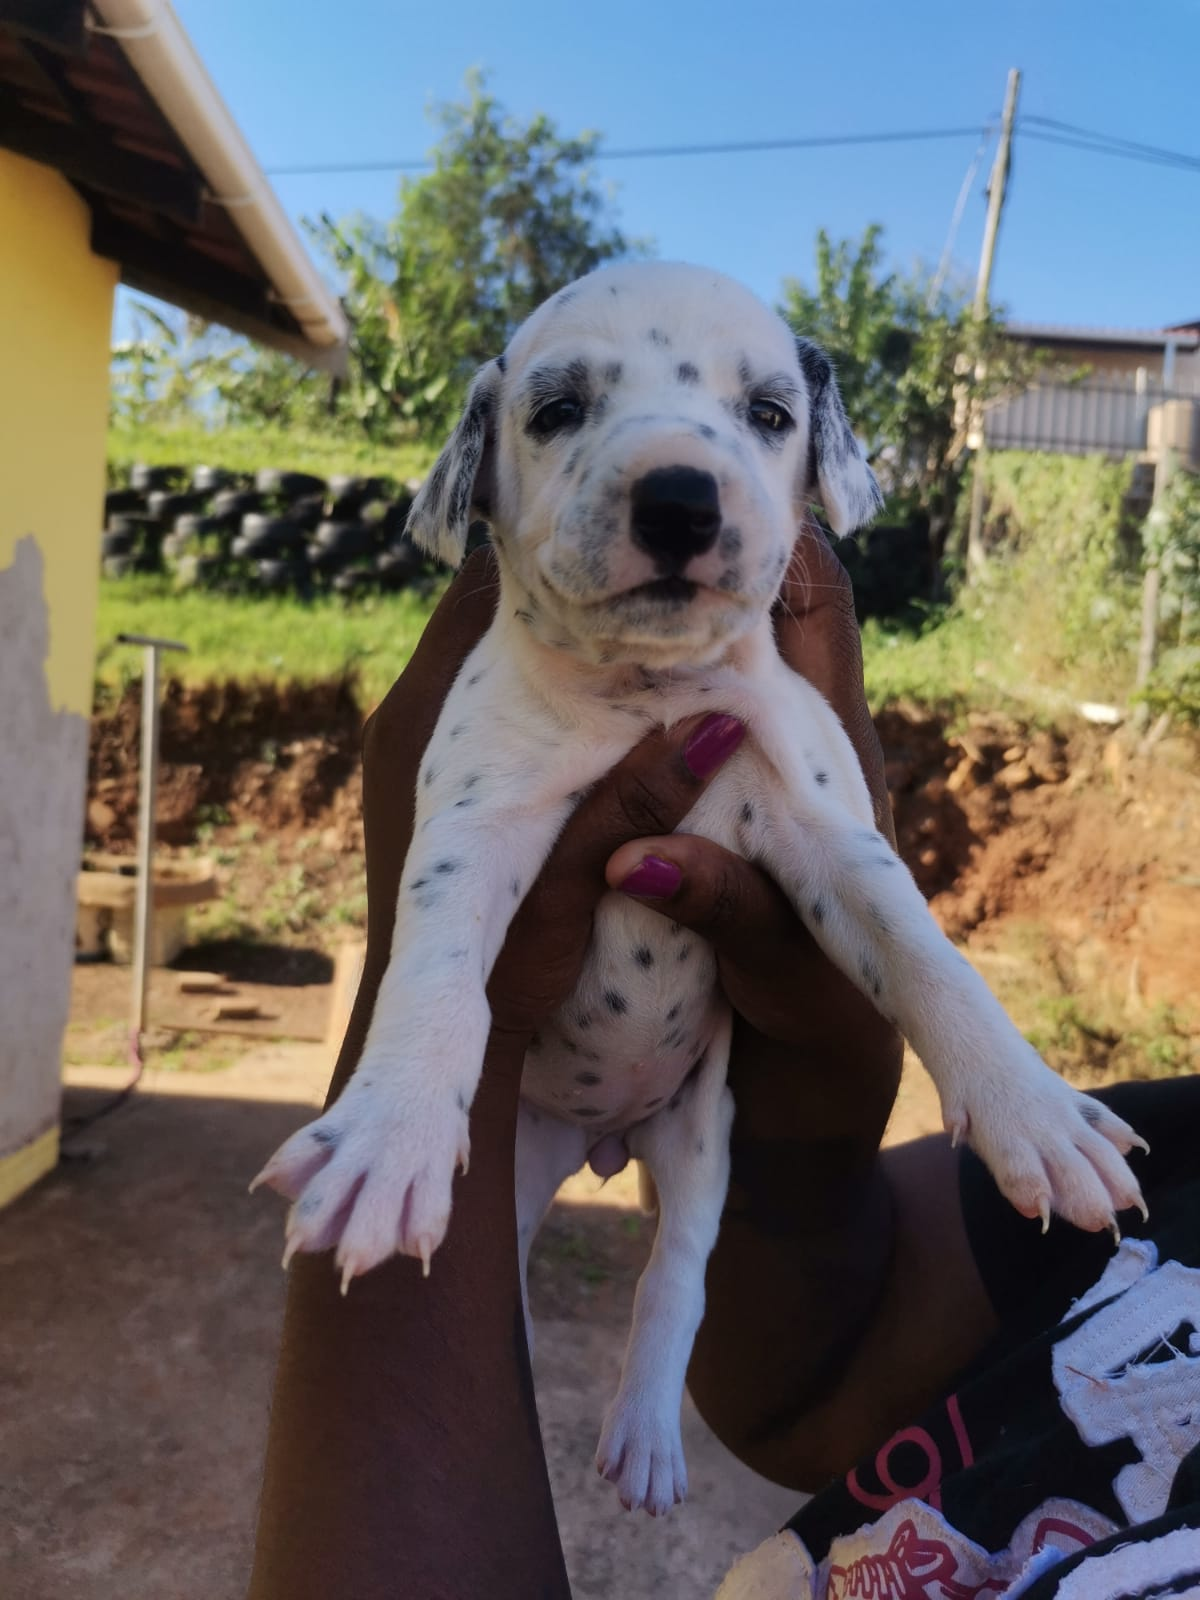 DALMATION PUPS LOOKING FOR A GOOD HOME